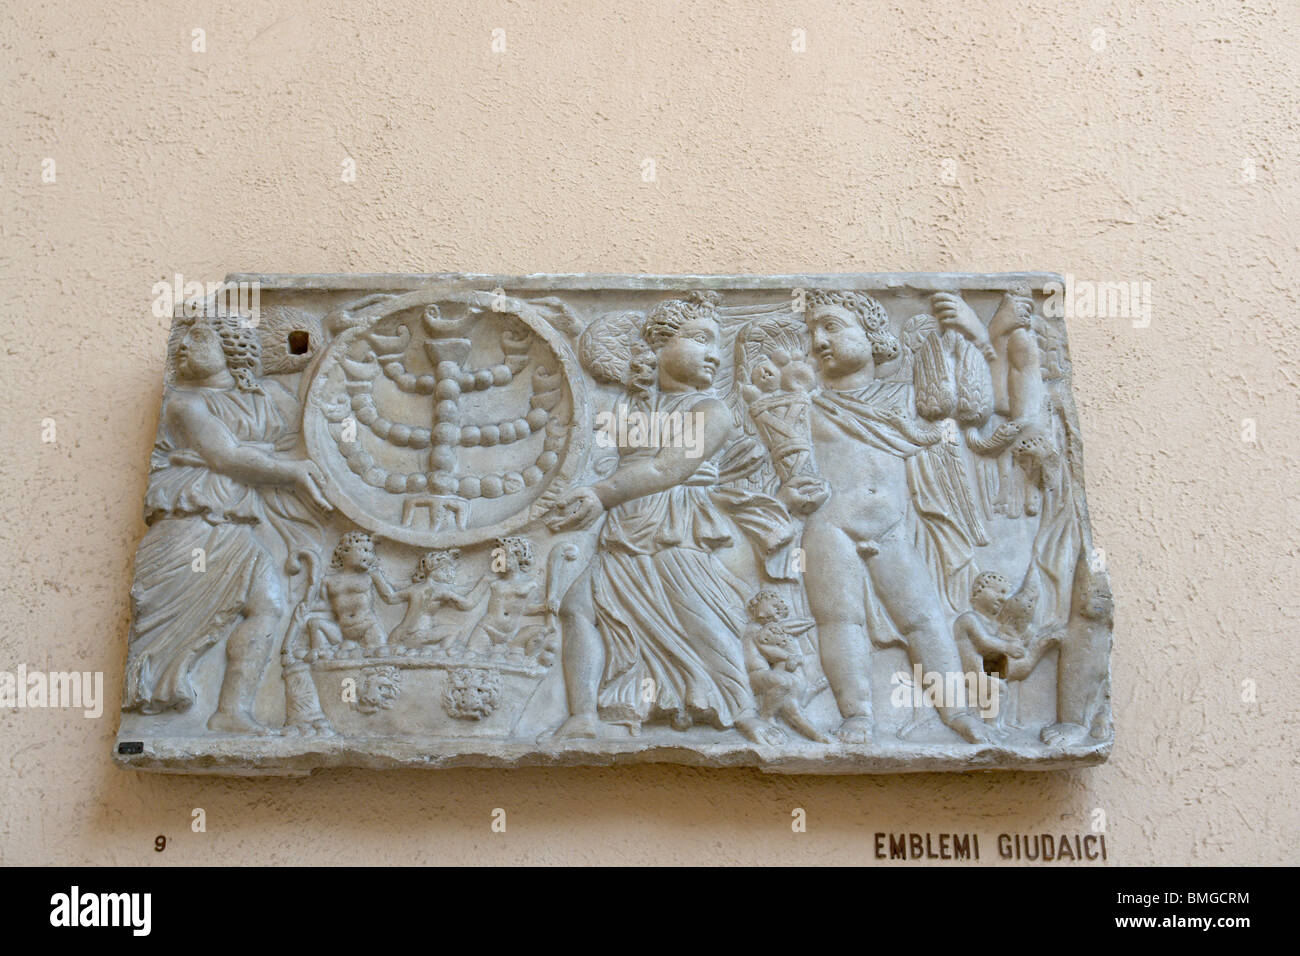 Judaic emblems on a tomb fragment (plaster cast) - Stock Image